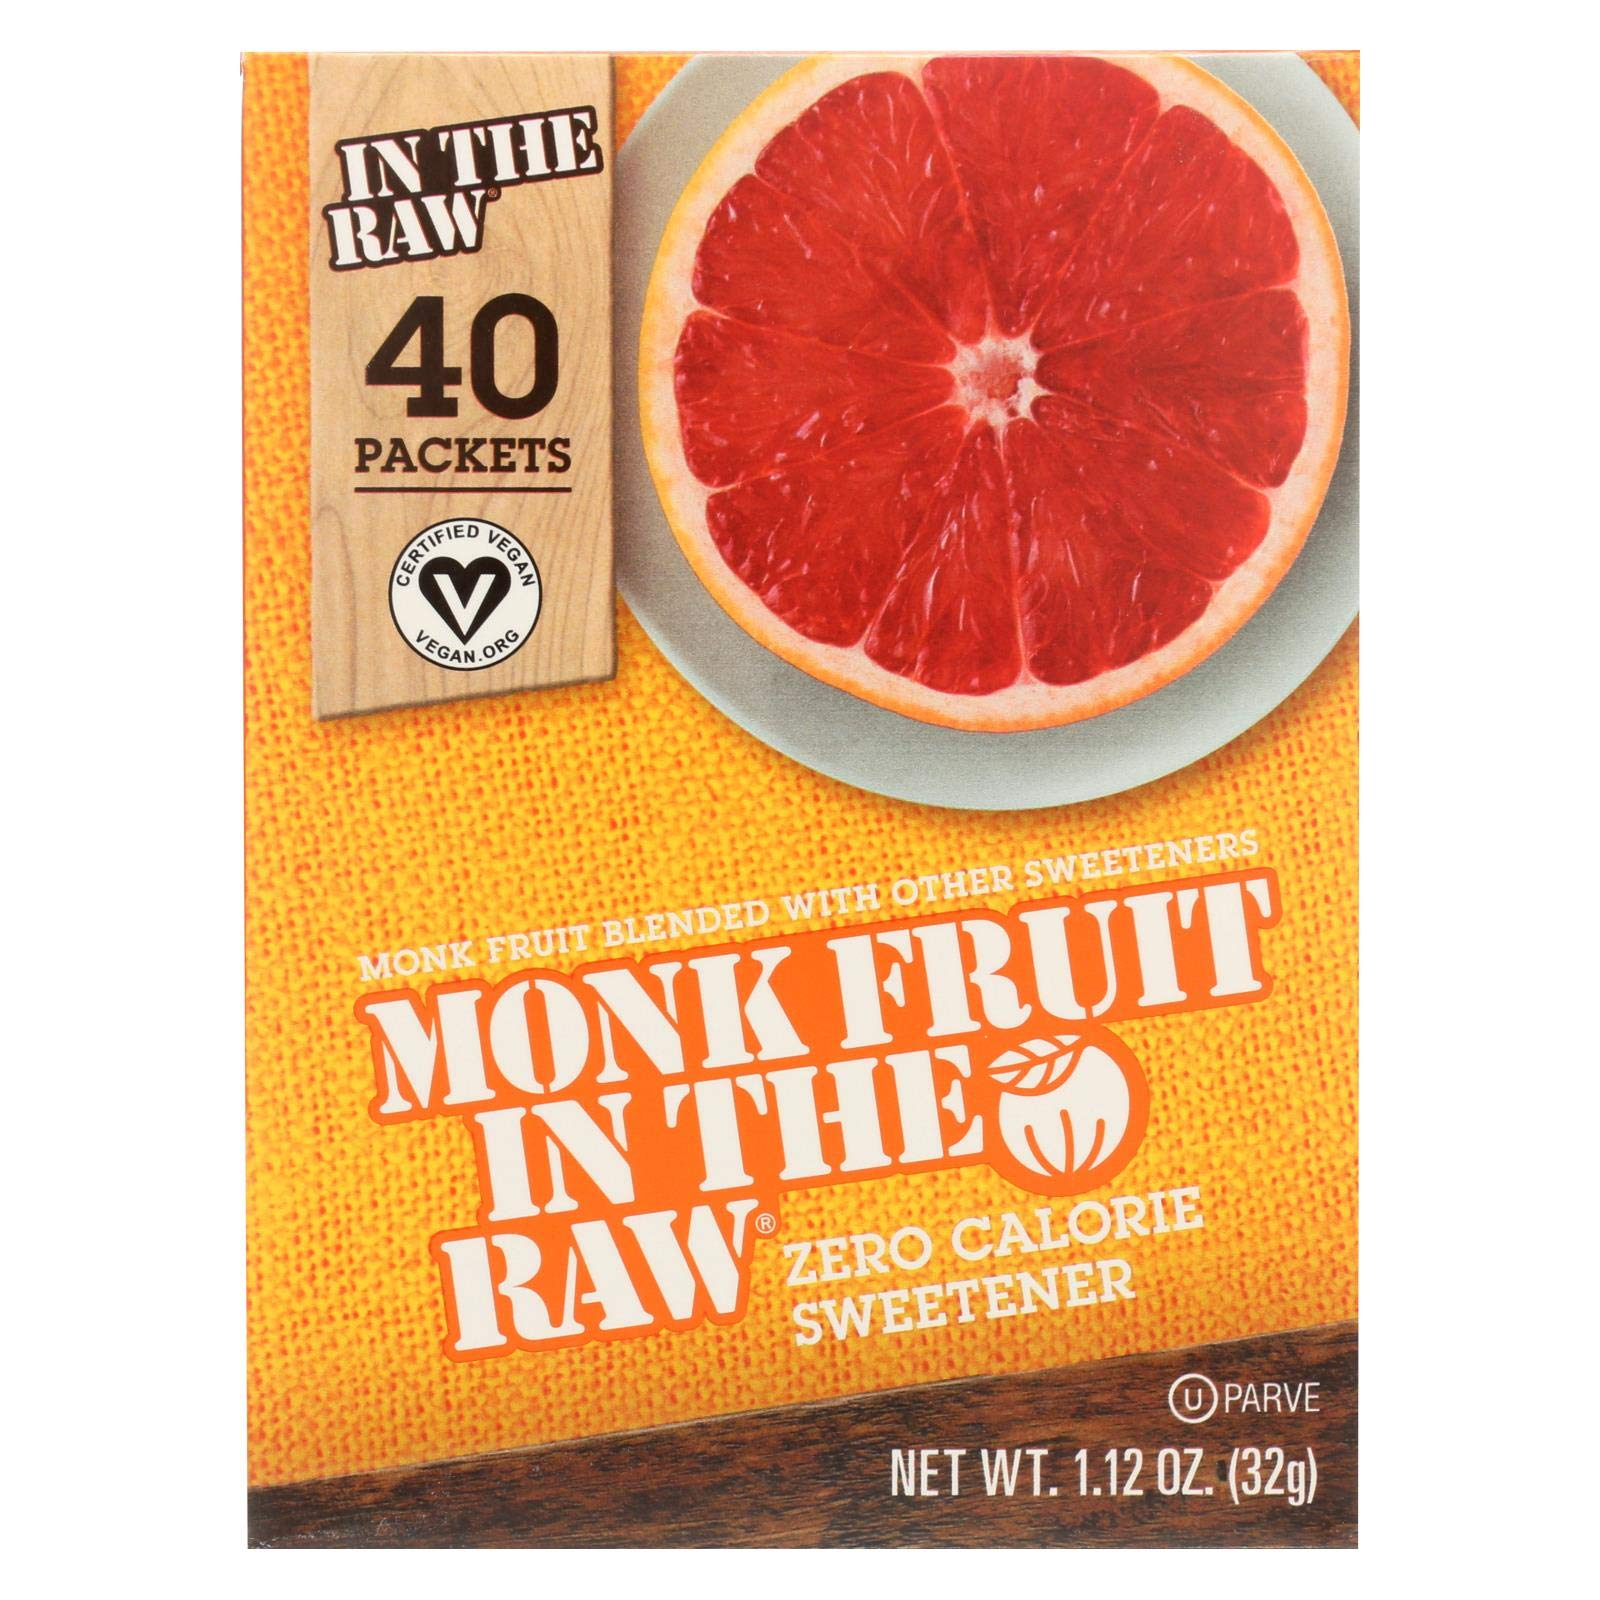 Sugar In The Raw Monk Fruit In The Raw - 40 per pack - 8 packs per case. by Sugar in the Raw